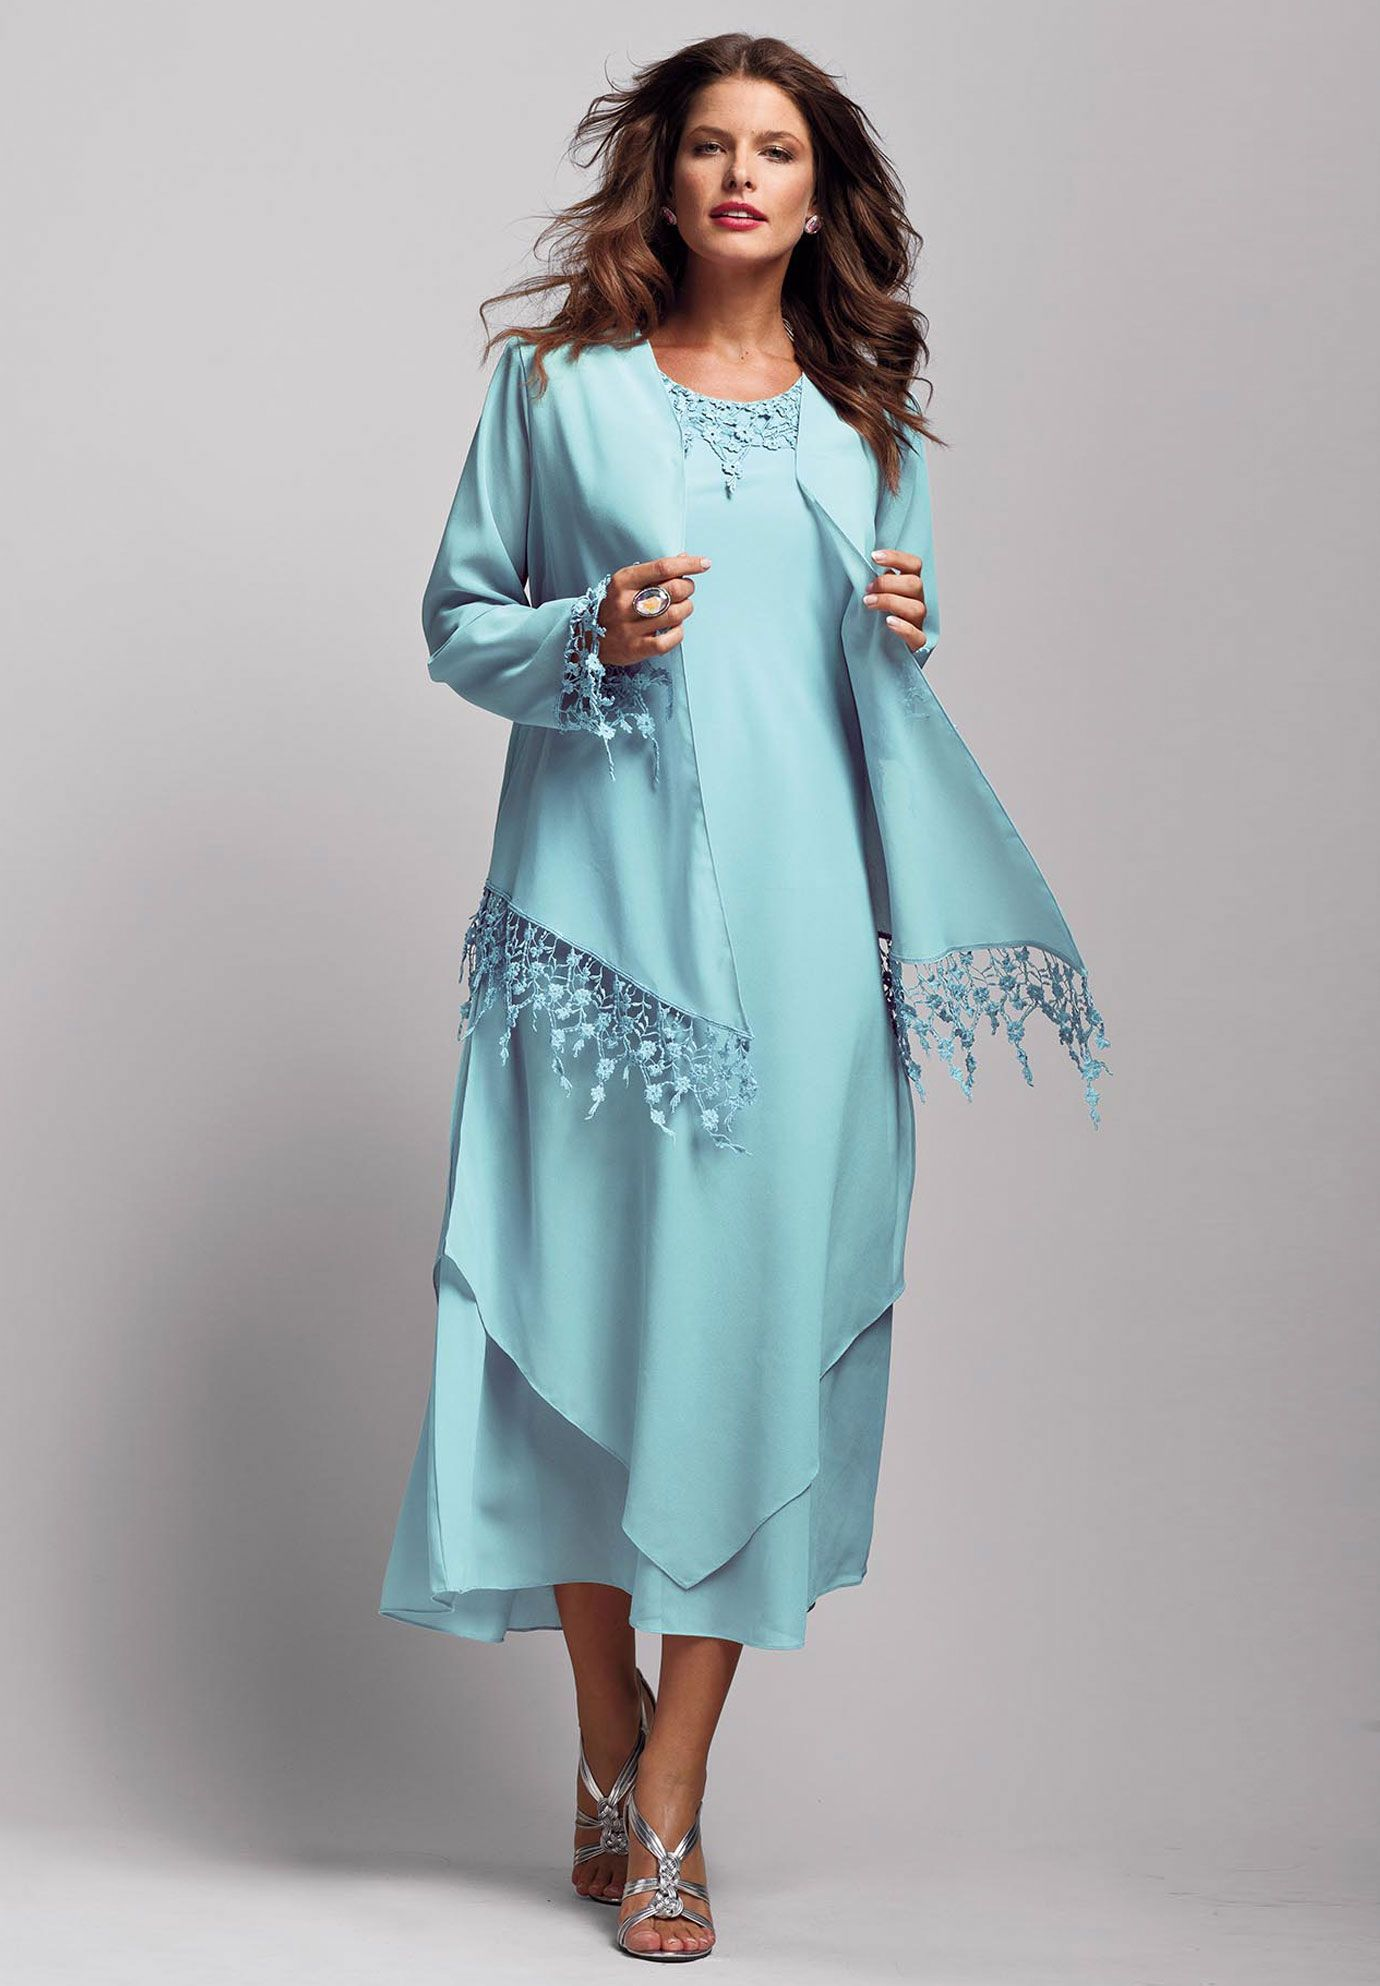 Plus Size Dripping Lace A-Line Jacket Dress | Plus Size Mother of ...